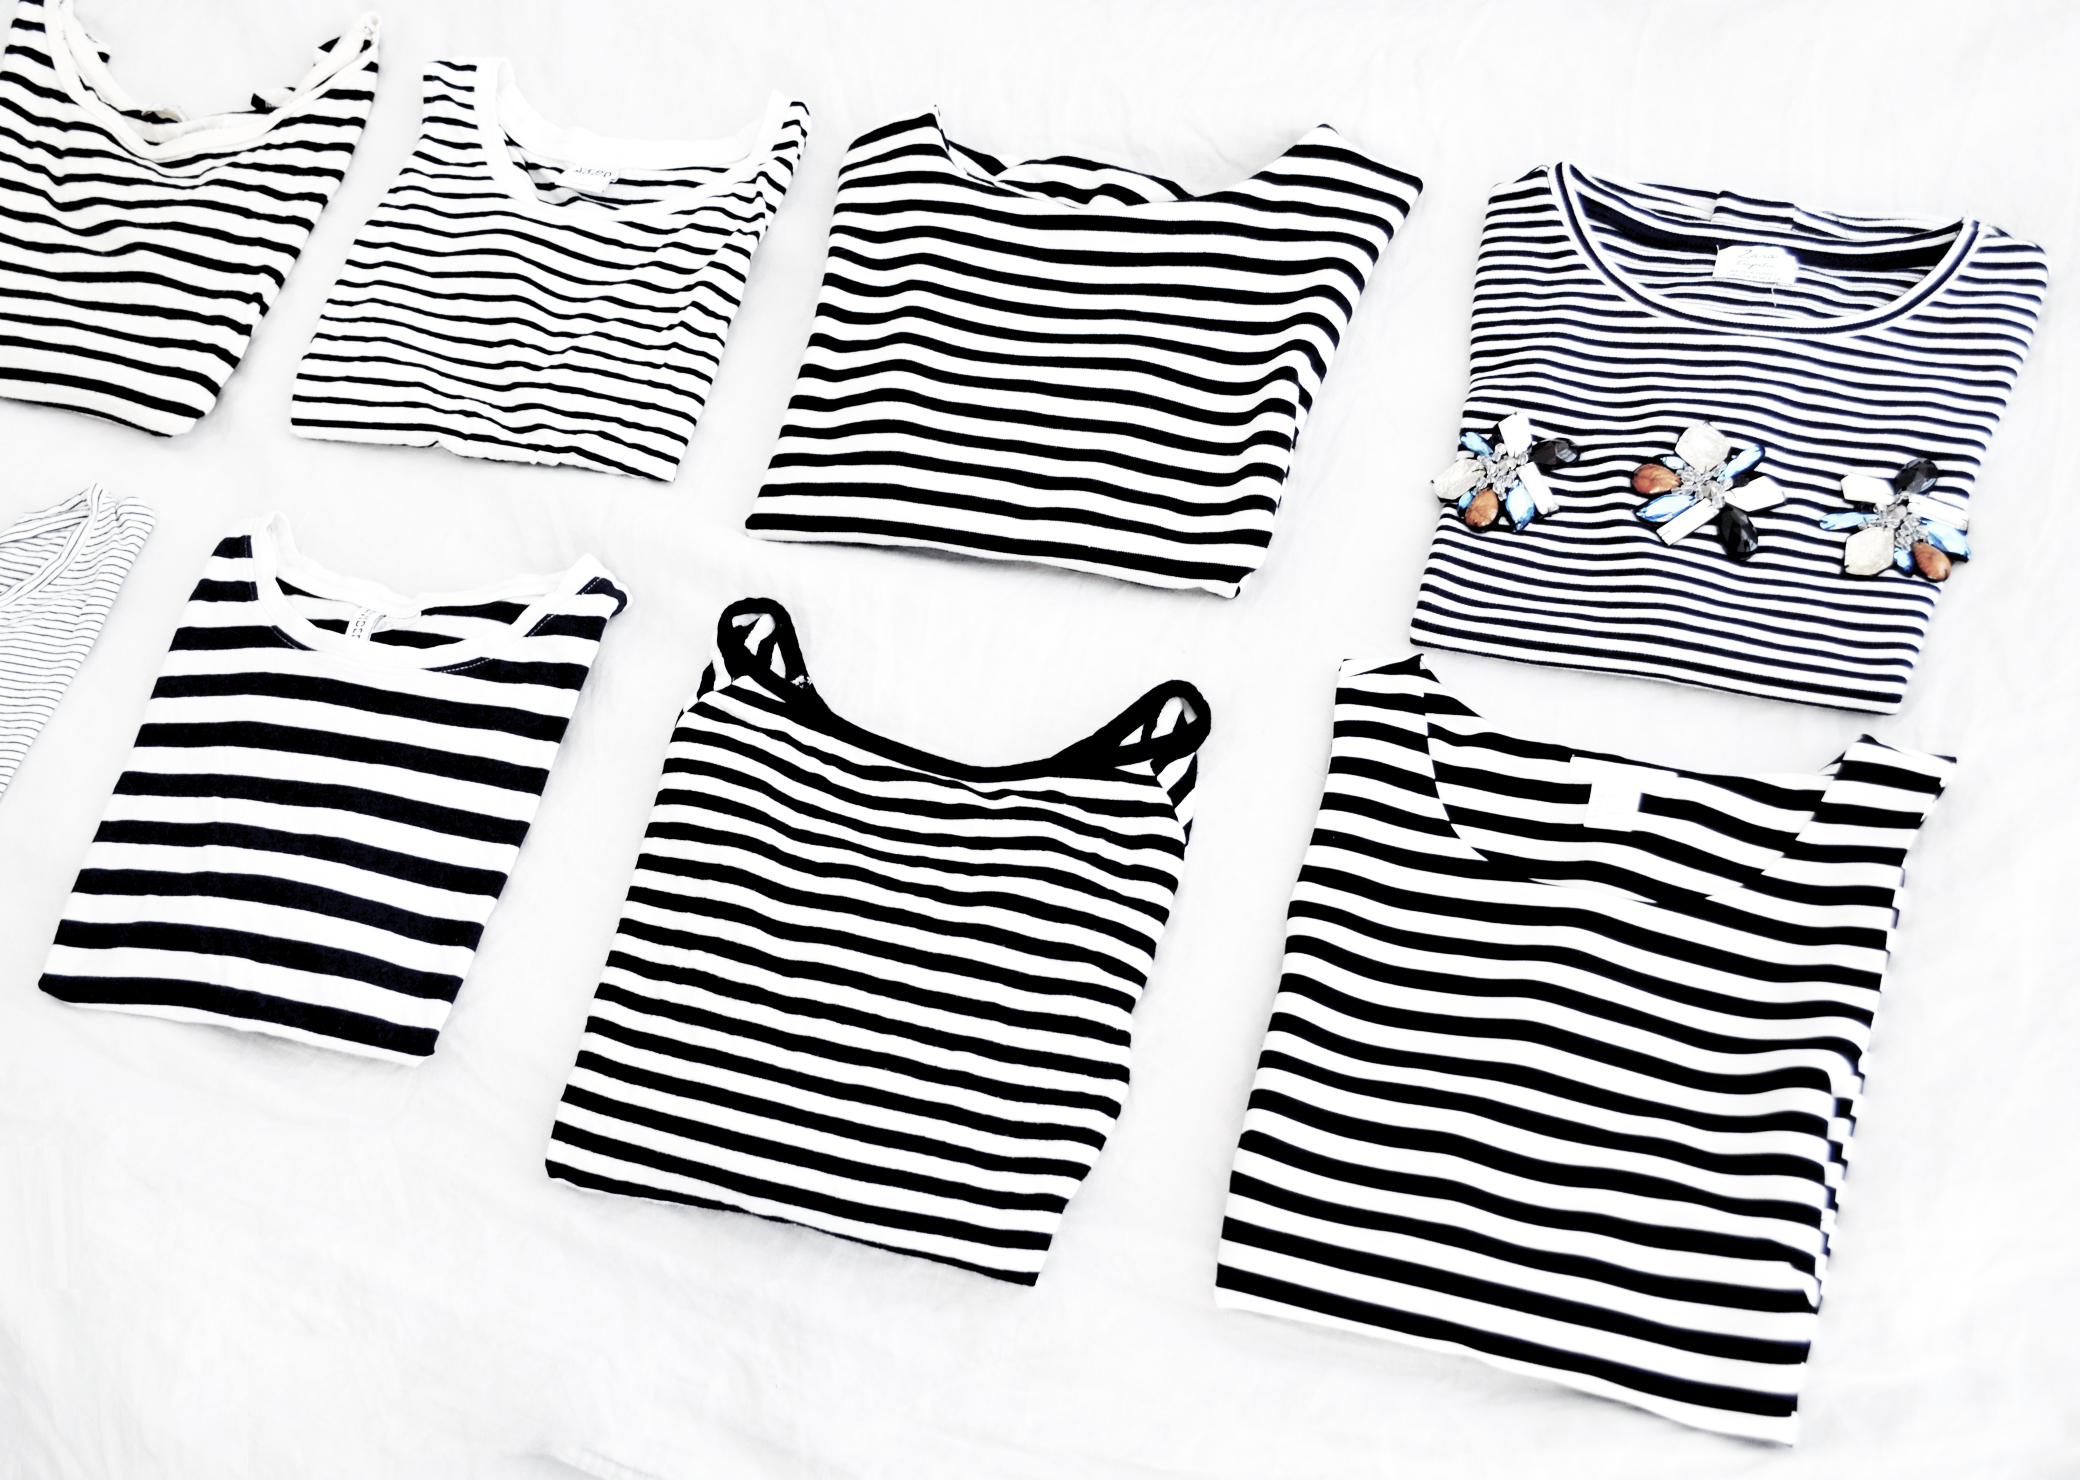 Soophisticated - Striped Top Addiction